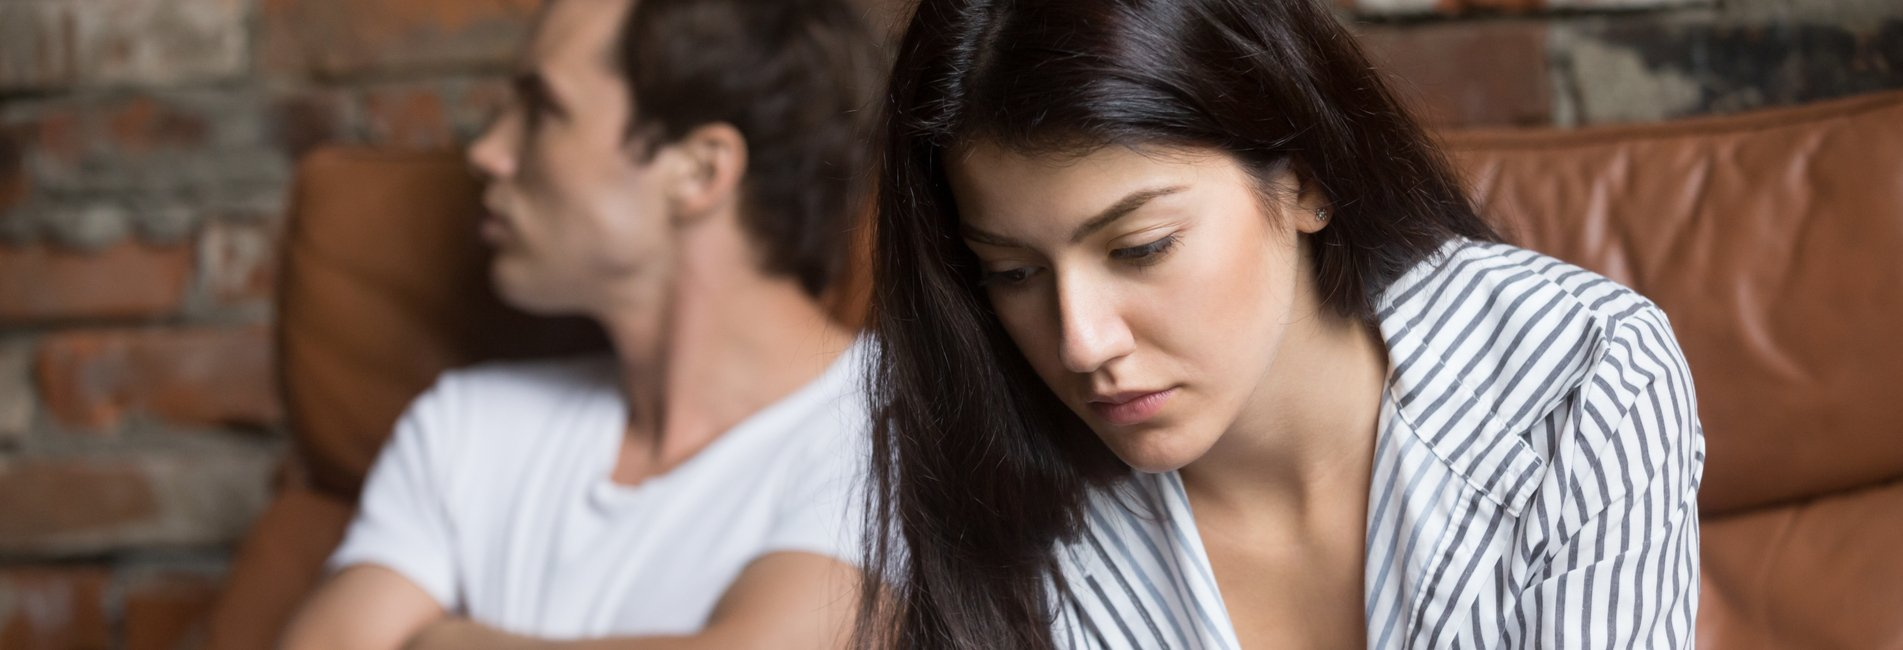 Addiction and Divorce Resurgence – A couple fights in therapy. According to addiction and divorce statistics, relationships are hard to manage when addiction is involved.